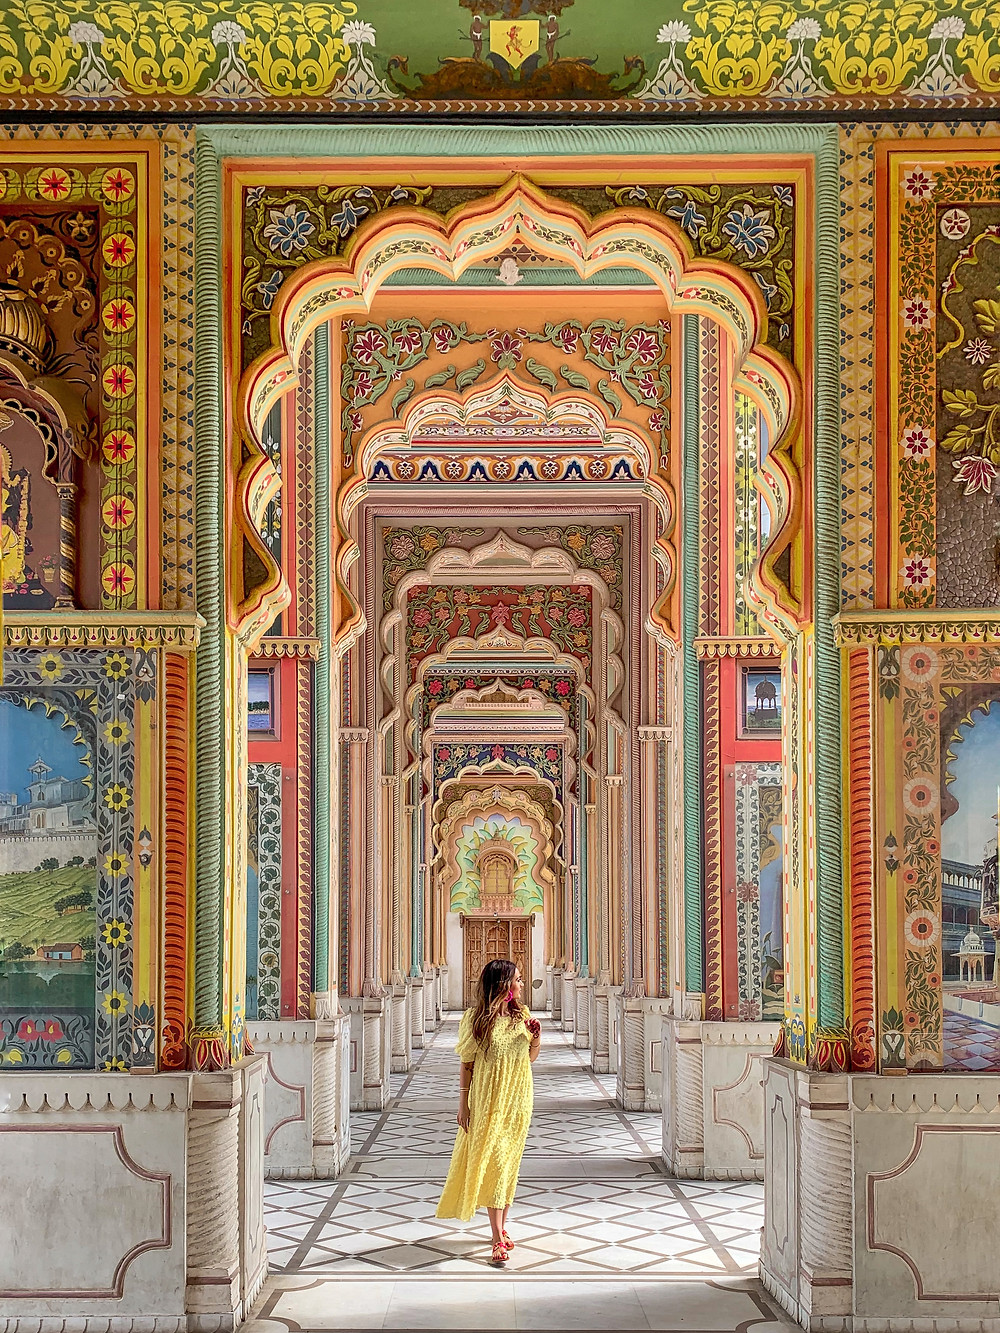 Patrika Gate Jaipur. When to visit Patrika Gate. Jawahar Circle. Jaipur free things to do. Jaipur must see sights. Top sights Jaipur. What to do in Jaipur. Beautiful destinations Jaipur. Instagram locations in Jaipur